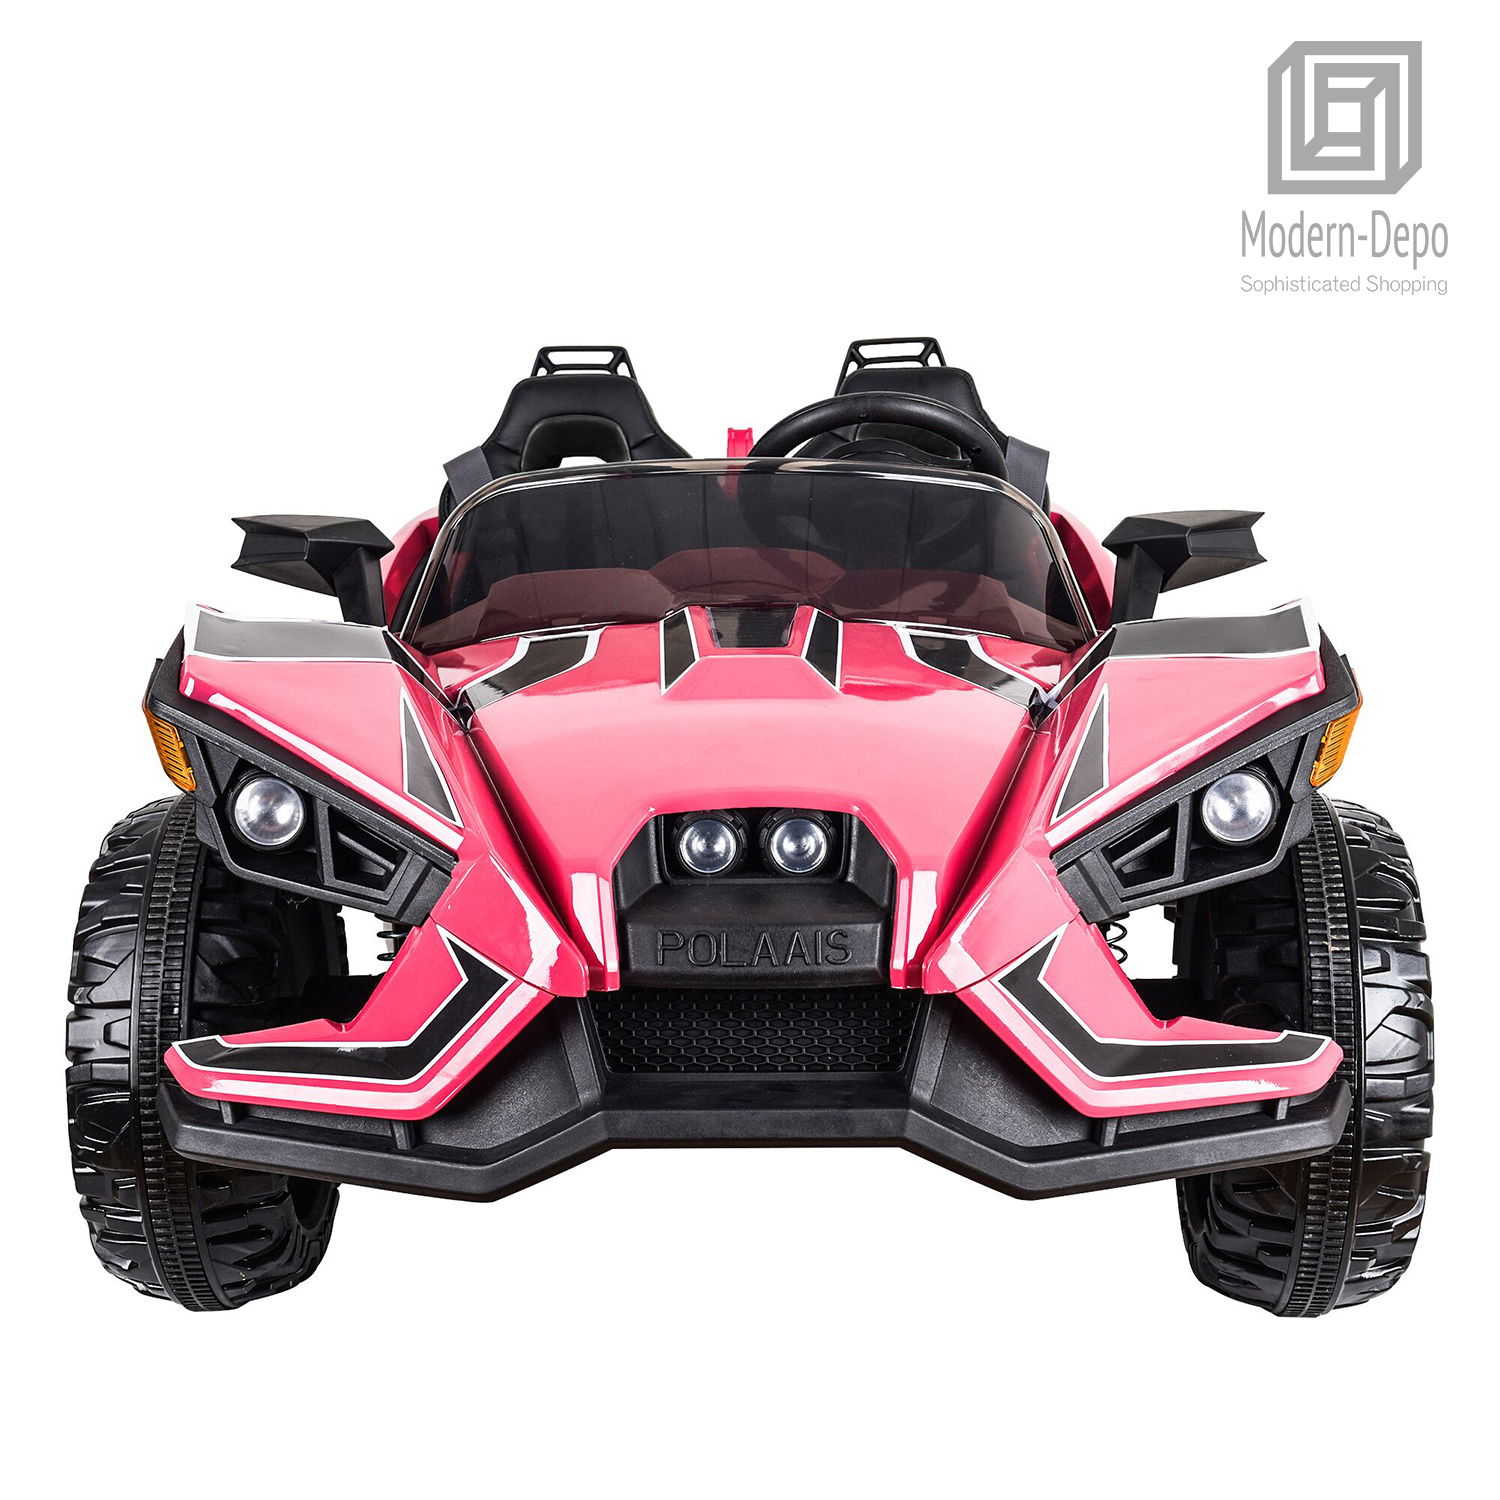 0d375909135 Details about 2 Seaters ATV Quad Racer Kids 12V Electric Ride-on Car with Remote  Control